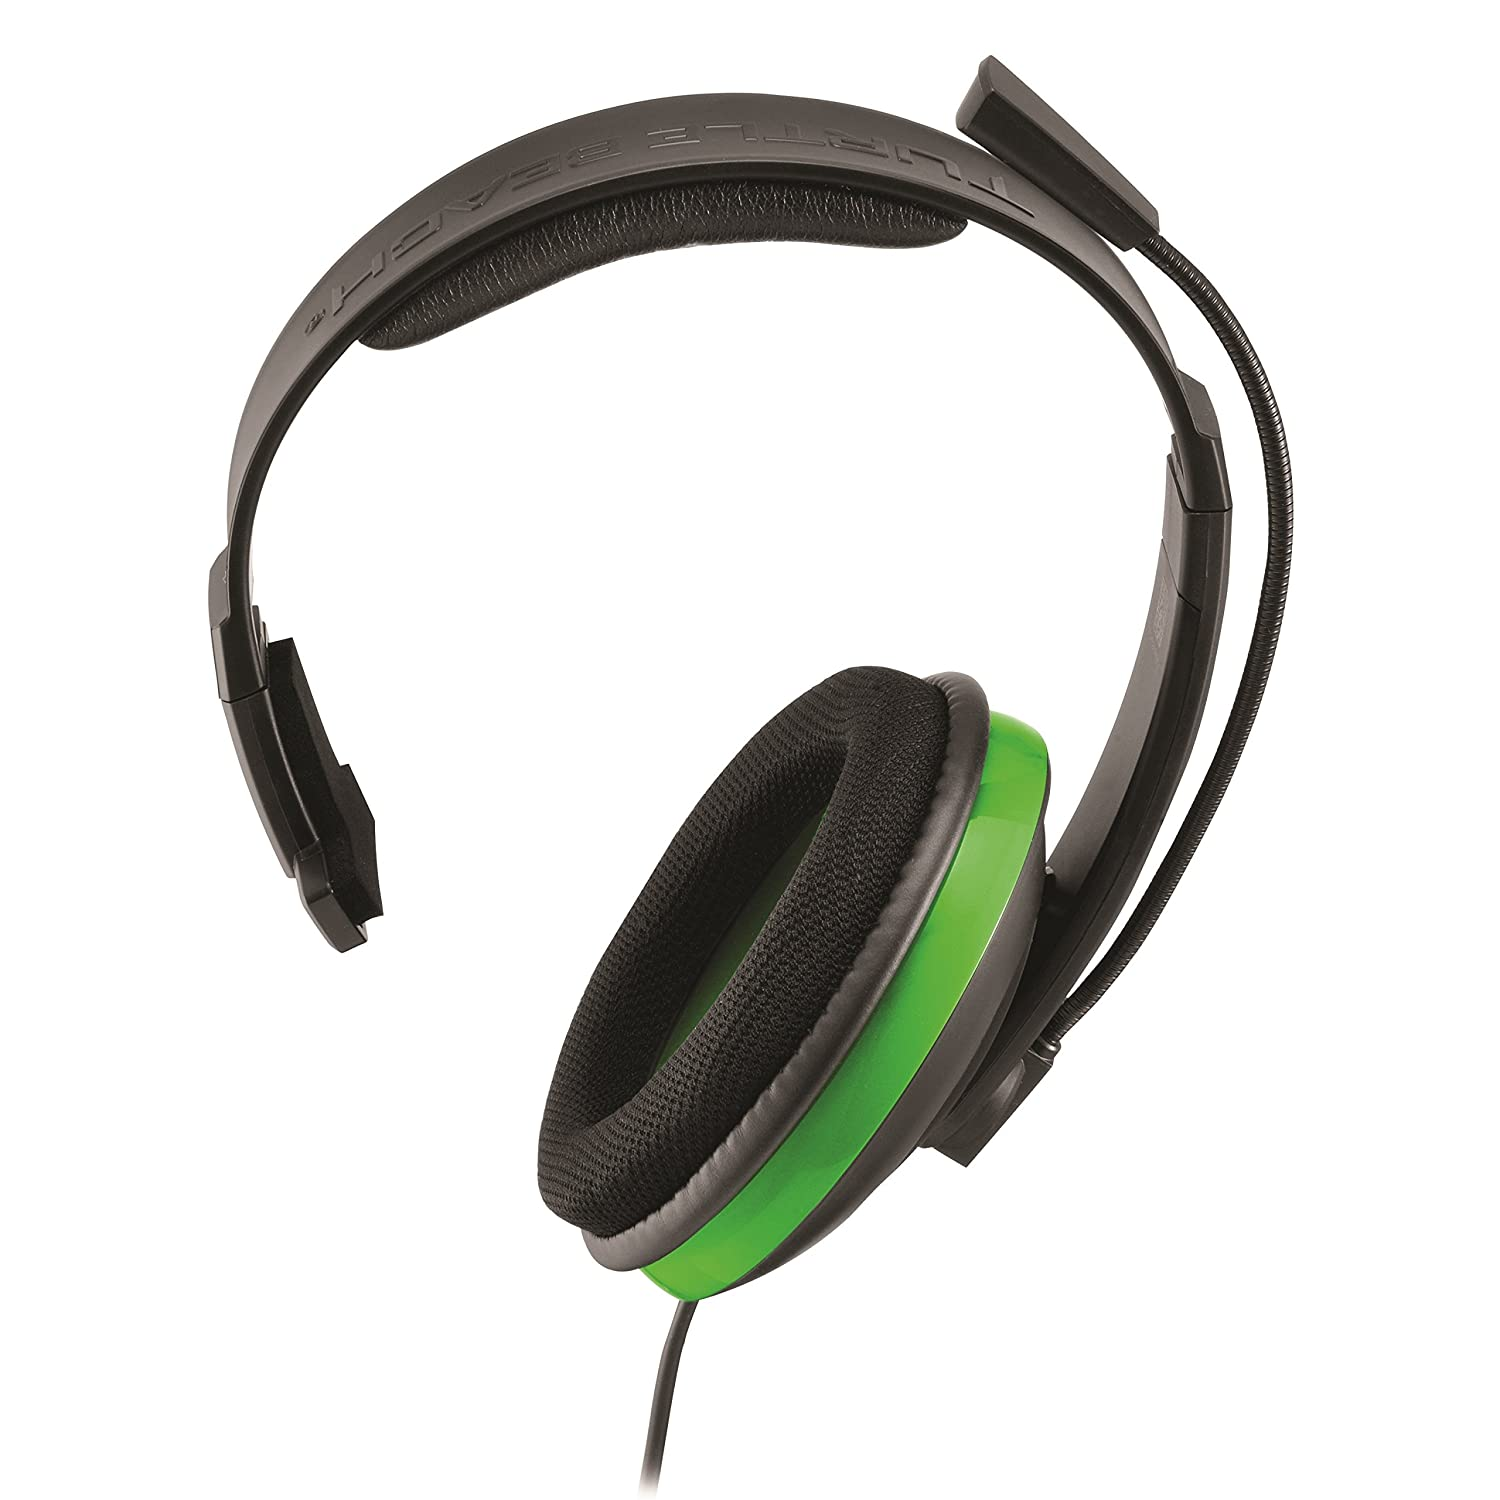 turtle beach recon 30x chat headset xbox one xbox one s ps4 pc turtle beach recon 30x chat headset xbox one xbox one s ps4 pc amazon co uk pc video games